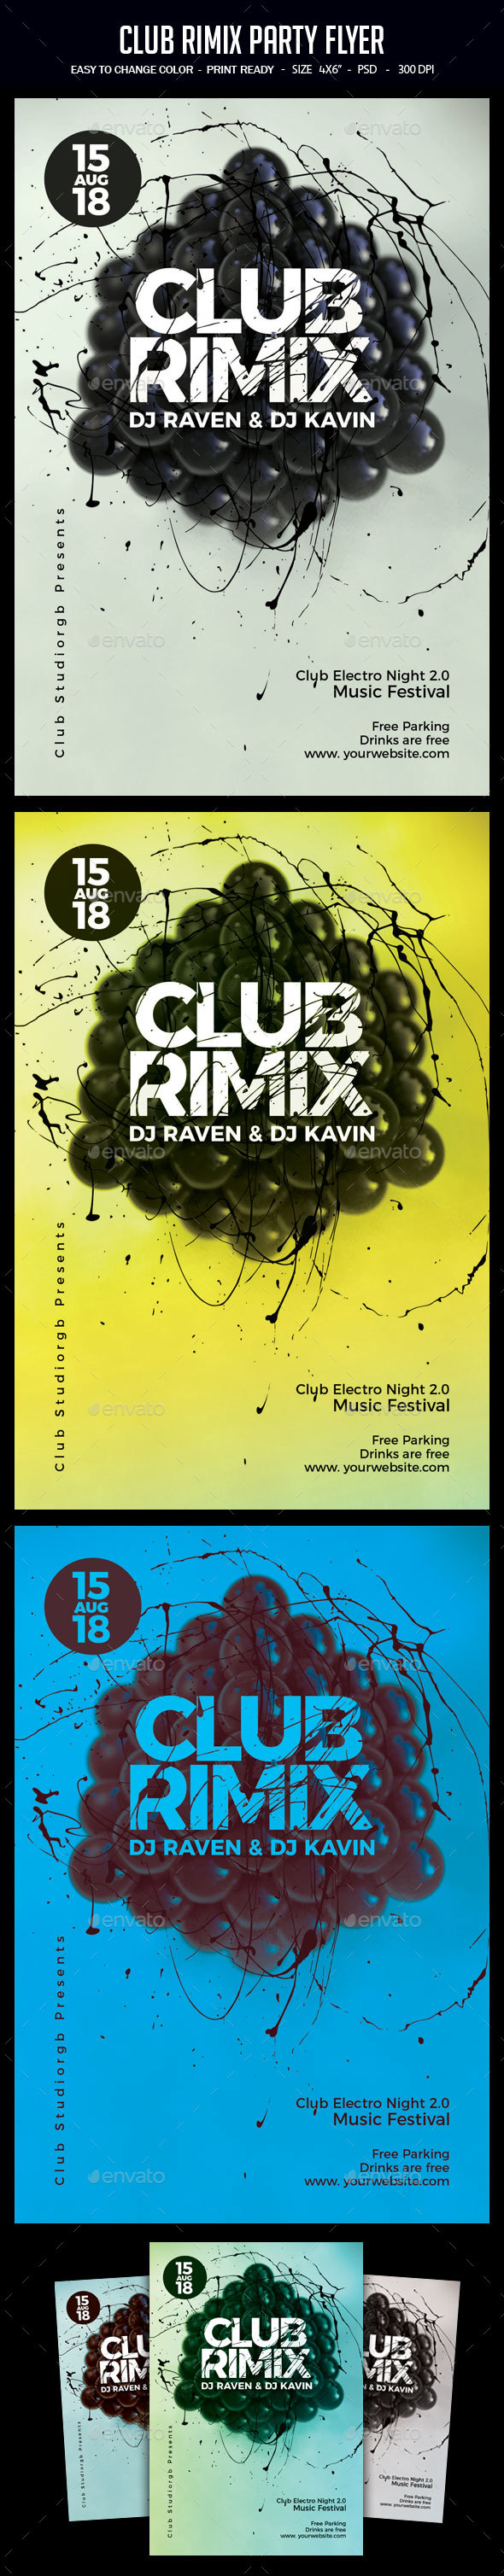 Club Rimix Party Flyer - Clubs & Parties Events